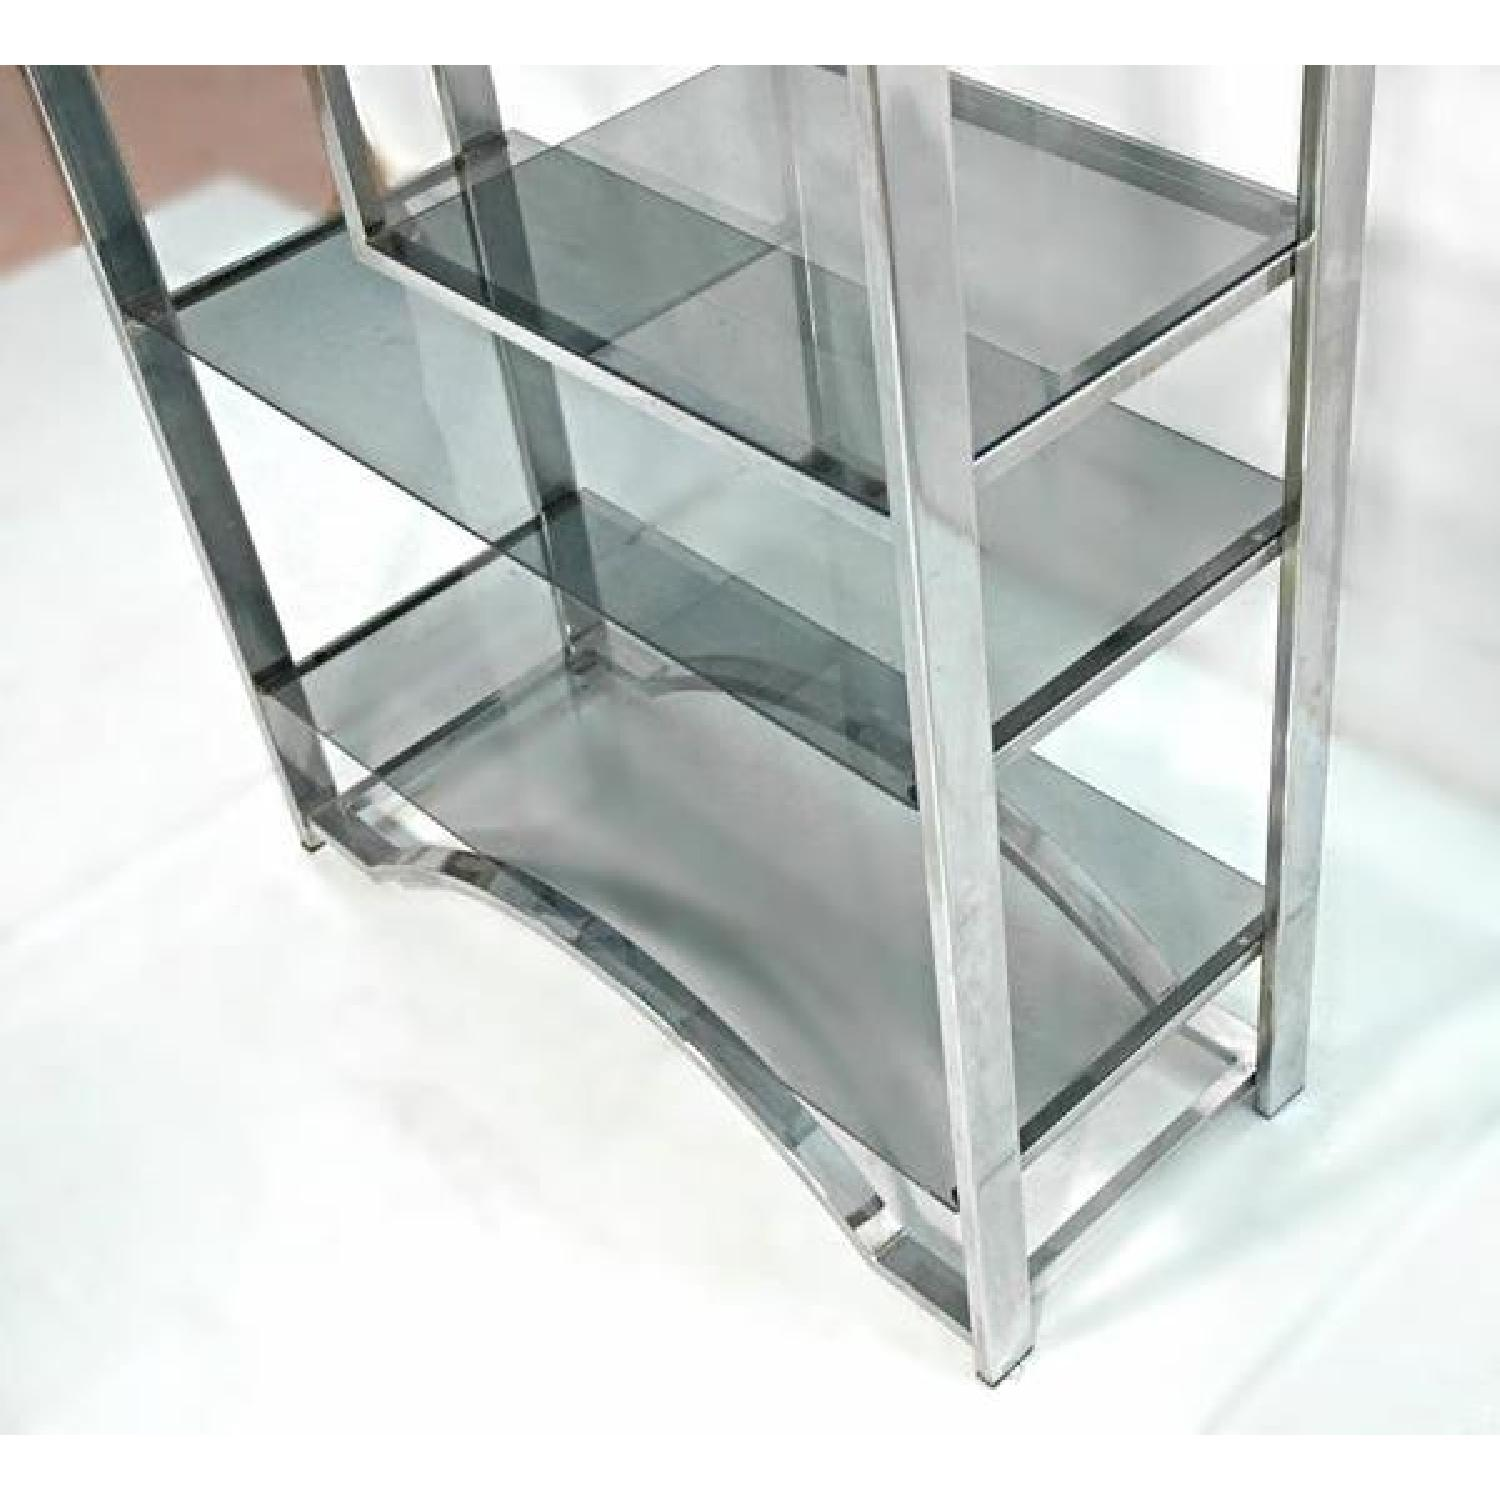 Milo Baughman Chrome Arched Top Etagere Smoked Glass Shelves - image-2